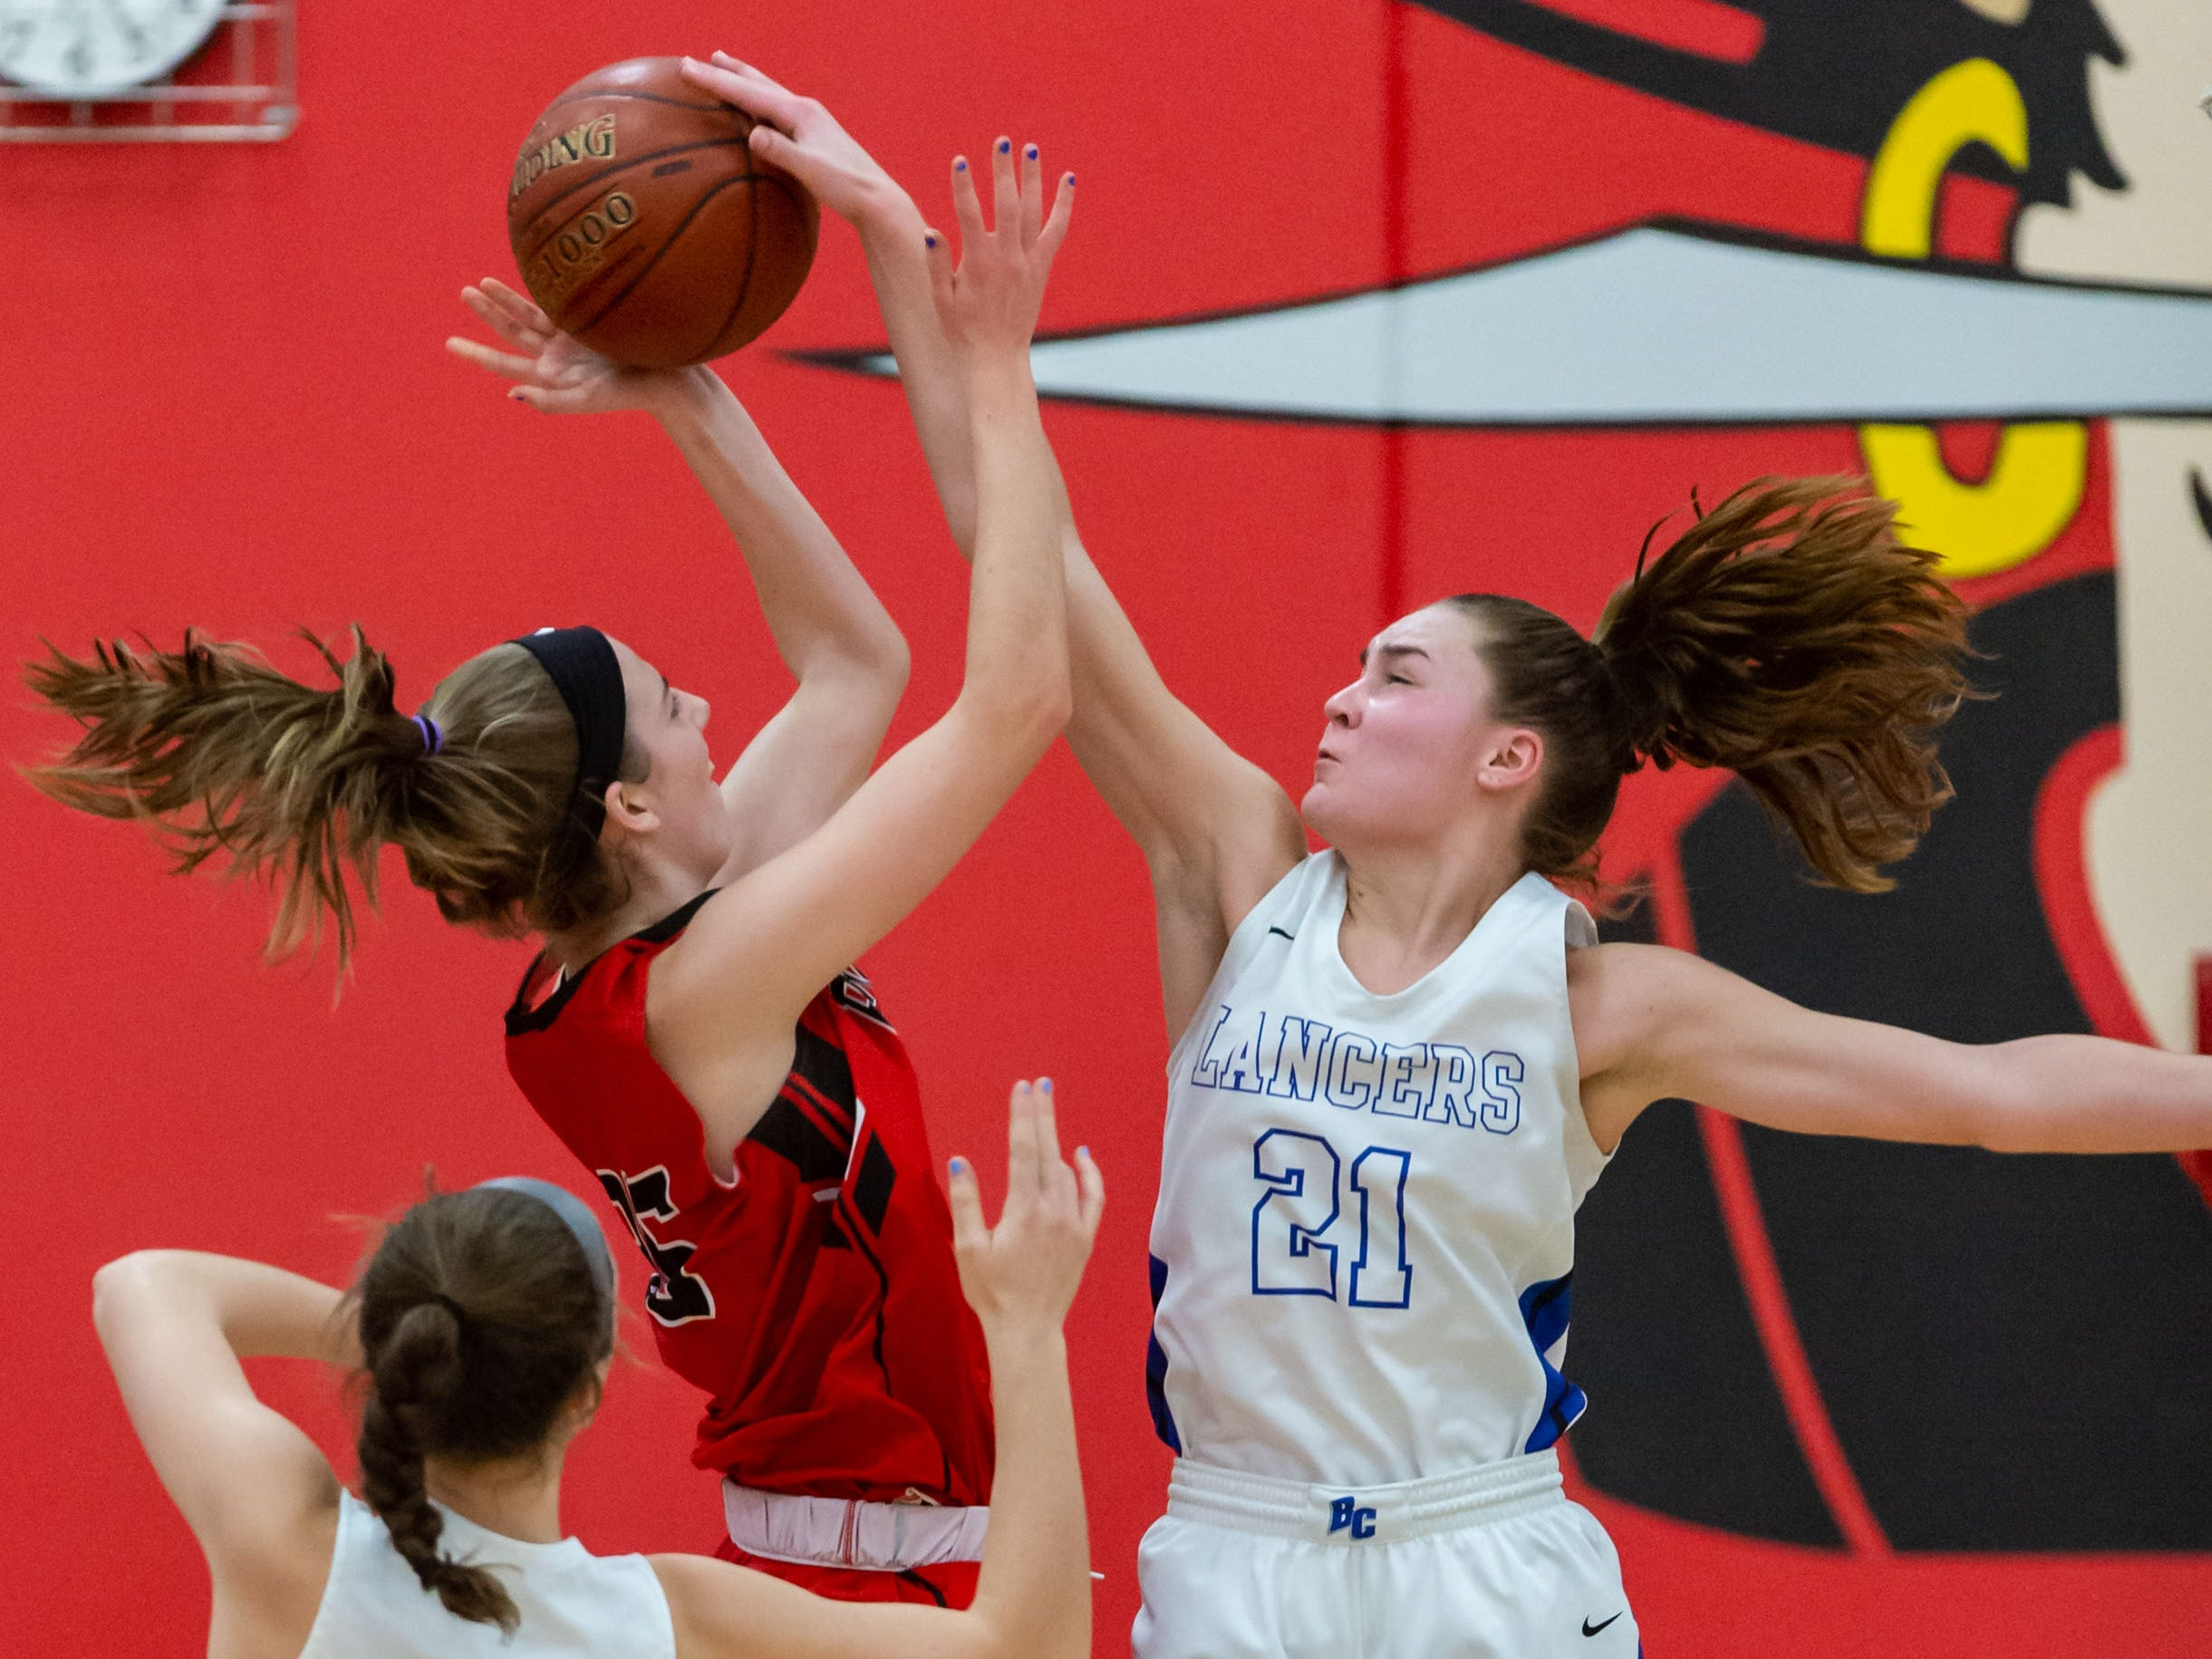 Brookfield Central's Anna Mortag (21) rejects a shot by Pewaukee's Vivianne Jende (35) during the game at Pewaukee on Friday, Dec. 28, 2018.